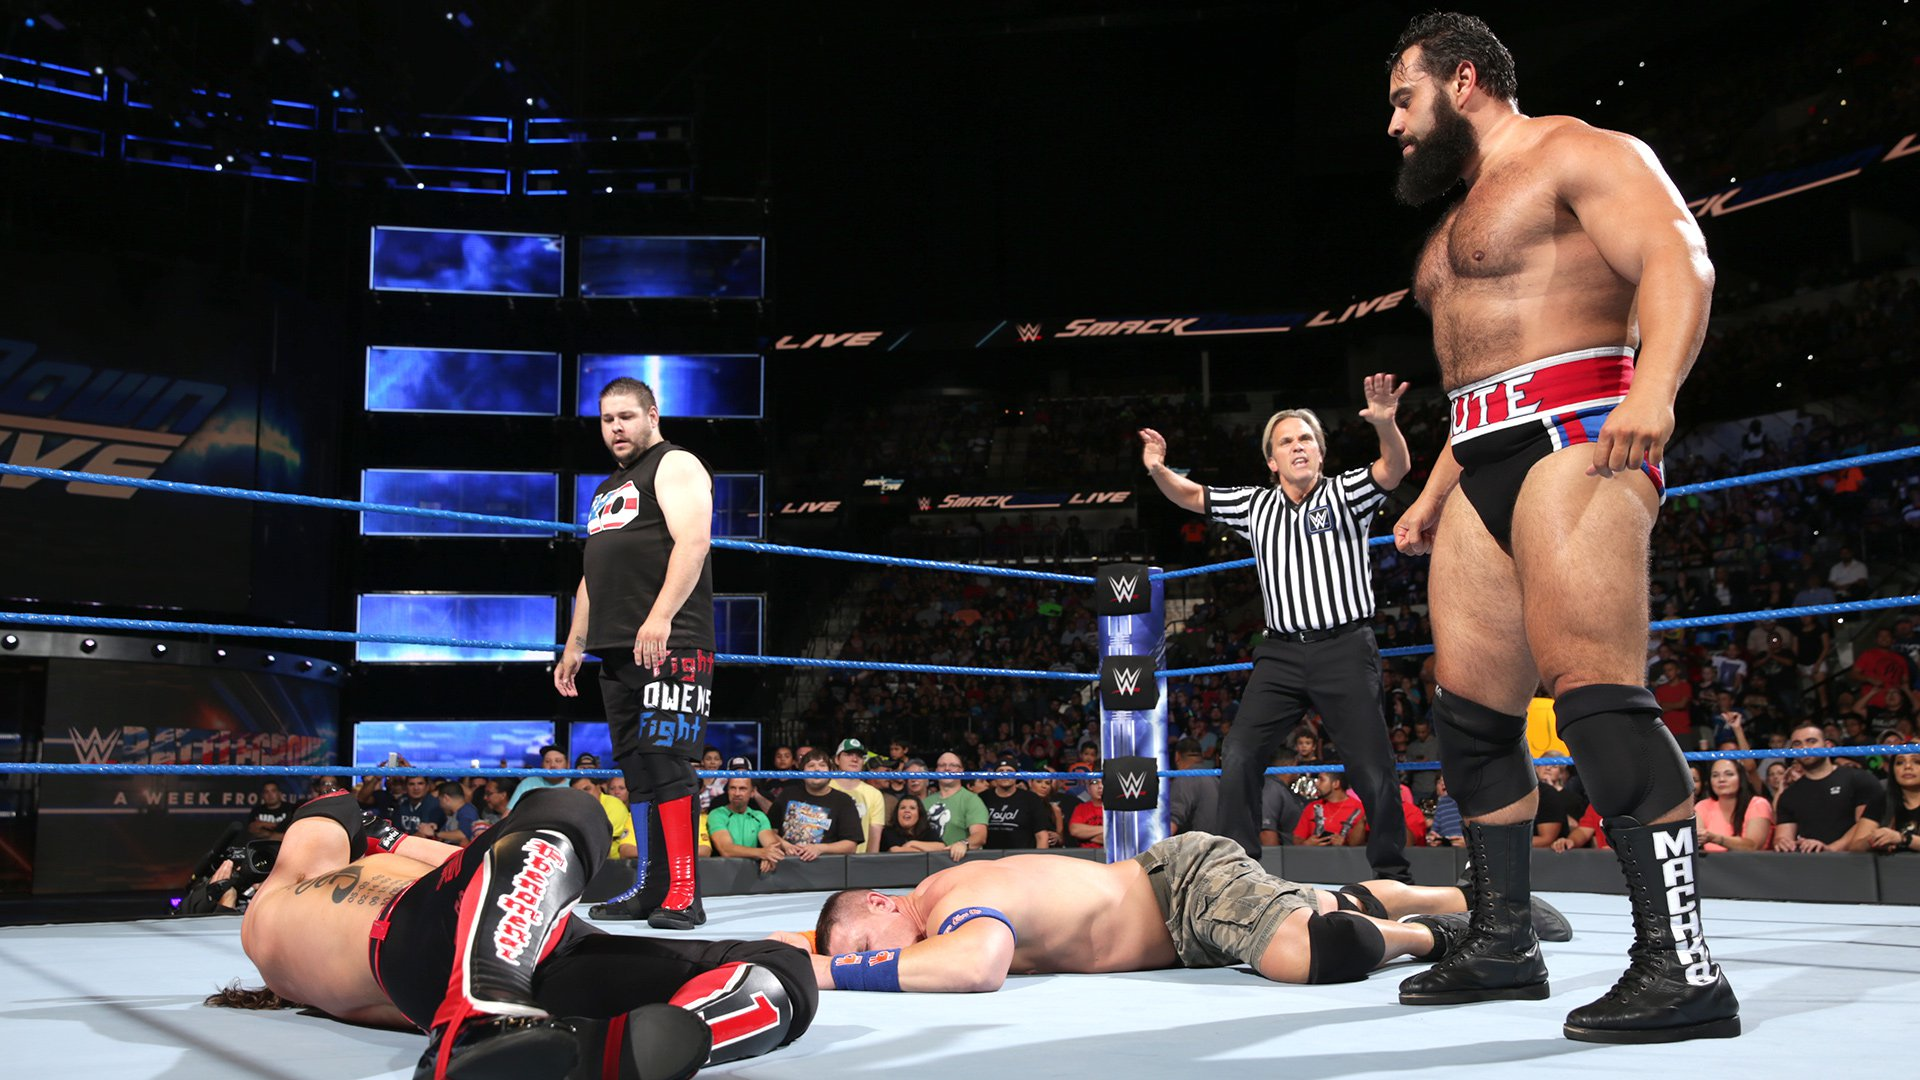 The Prizefighter and Rusev stand tall over their enemies.